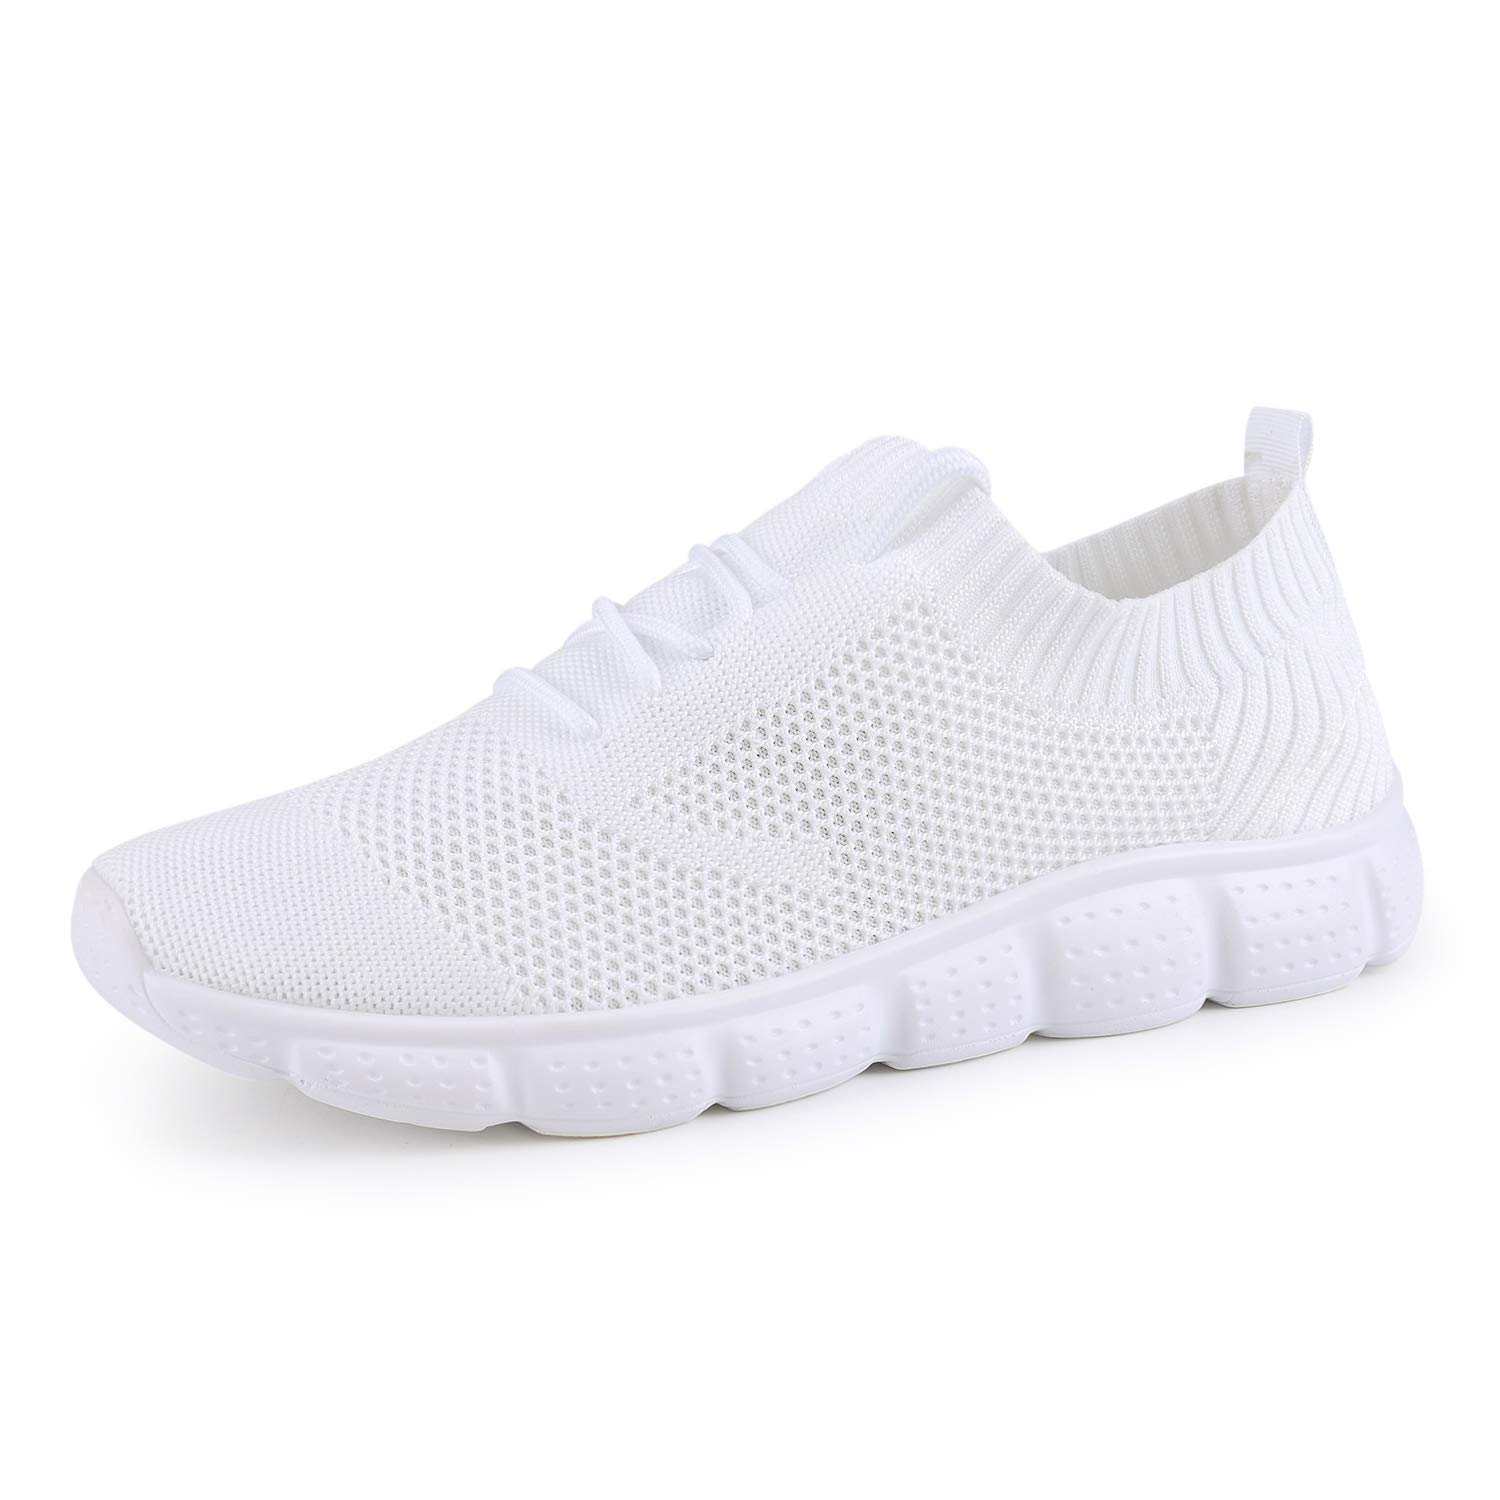 ANTETOKUPO Mens Athletic Walking Gym Shoes Comfortable Sports Tennis Lightweight Breathable Running Sneakers Shoes for Men